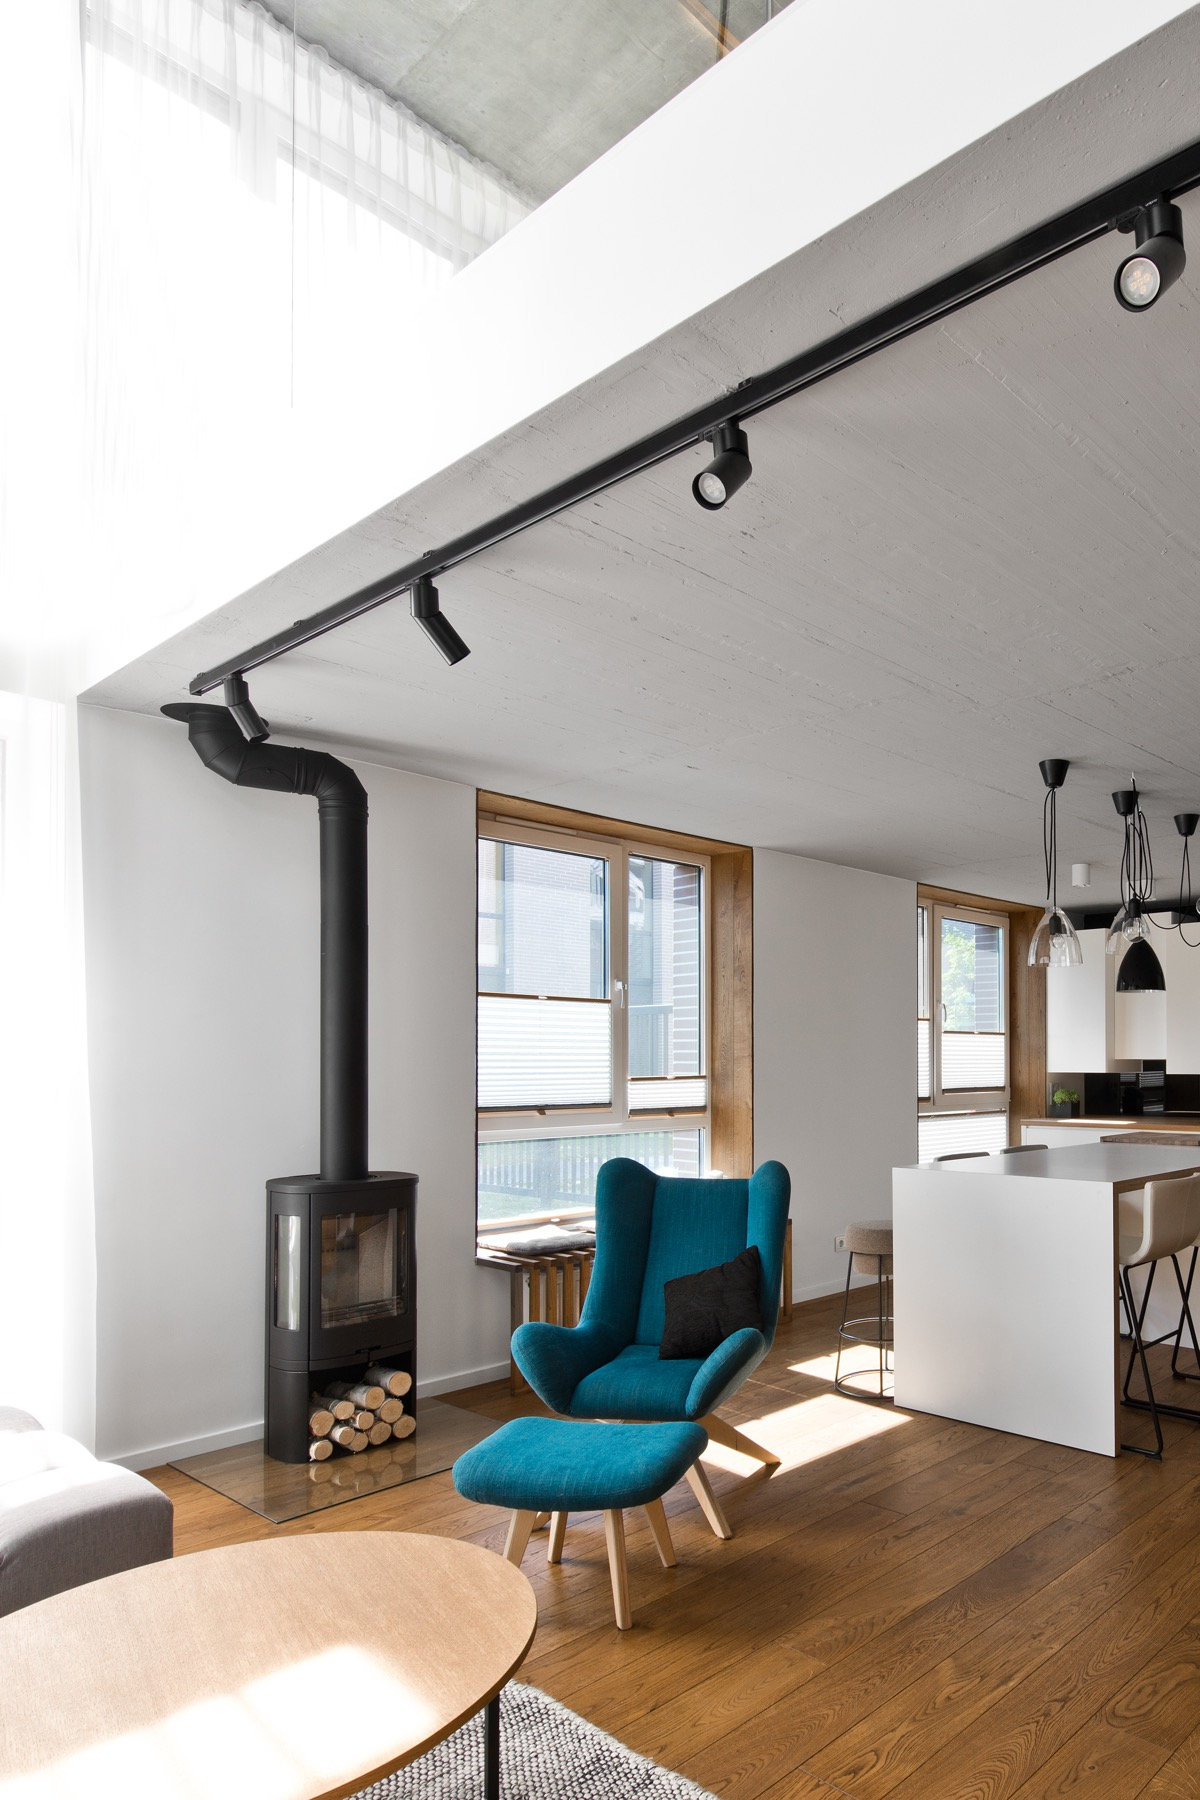 Track Lighting - Chic scandinavian loft interior